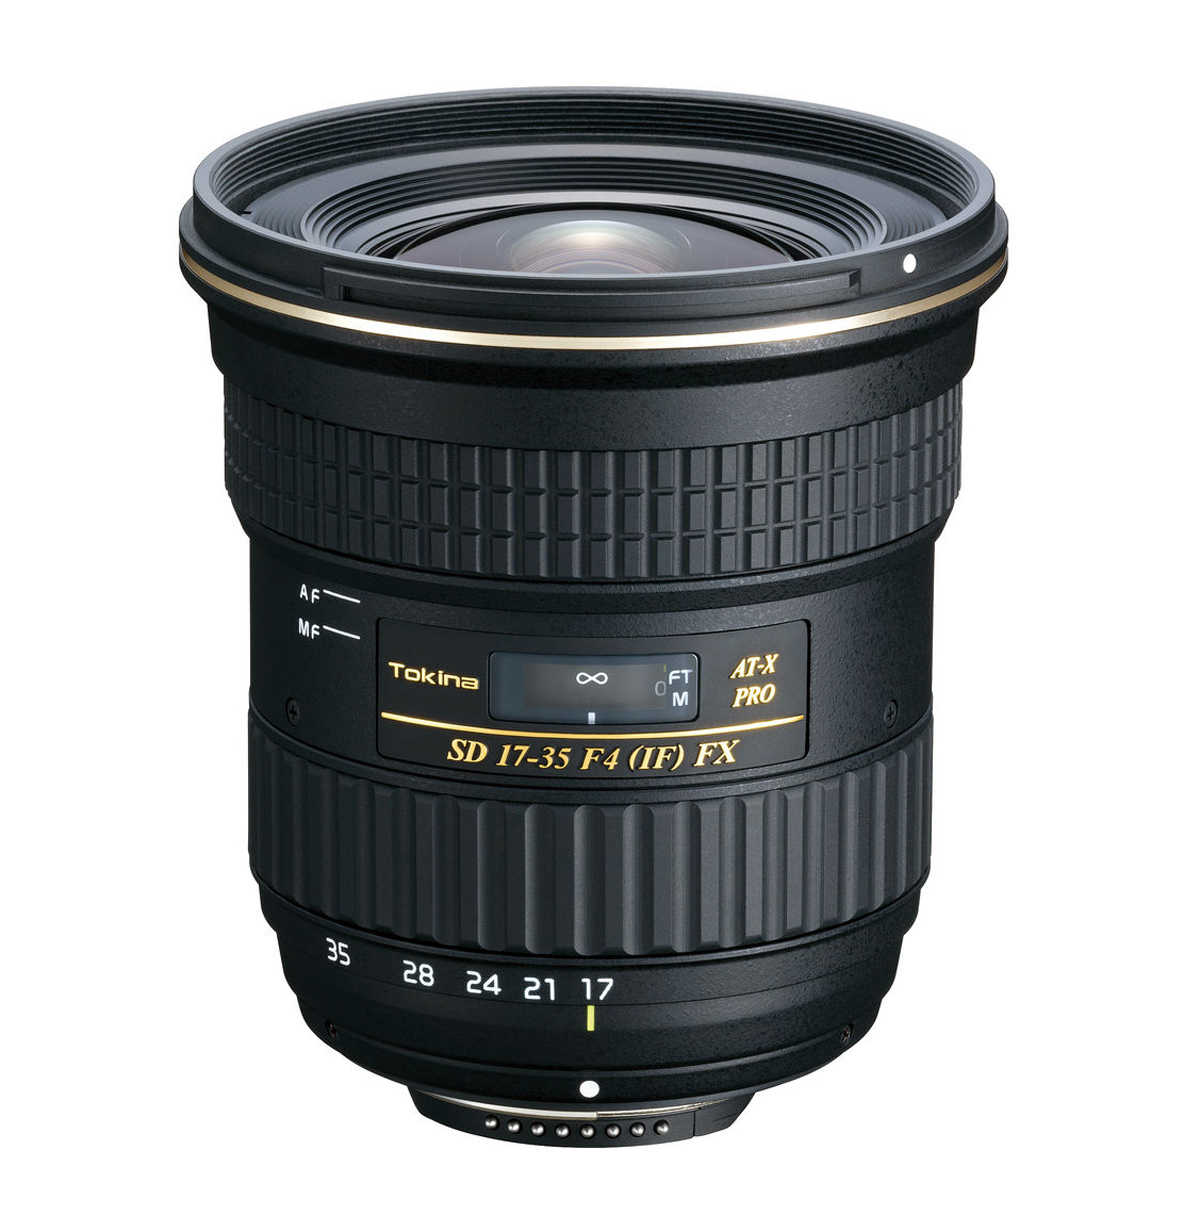 Image of Tokina 17-35mm f/4 AT-X Pro FX Lens for Canon